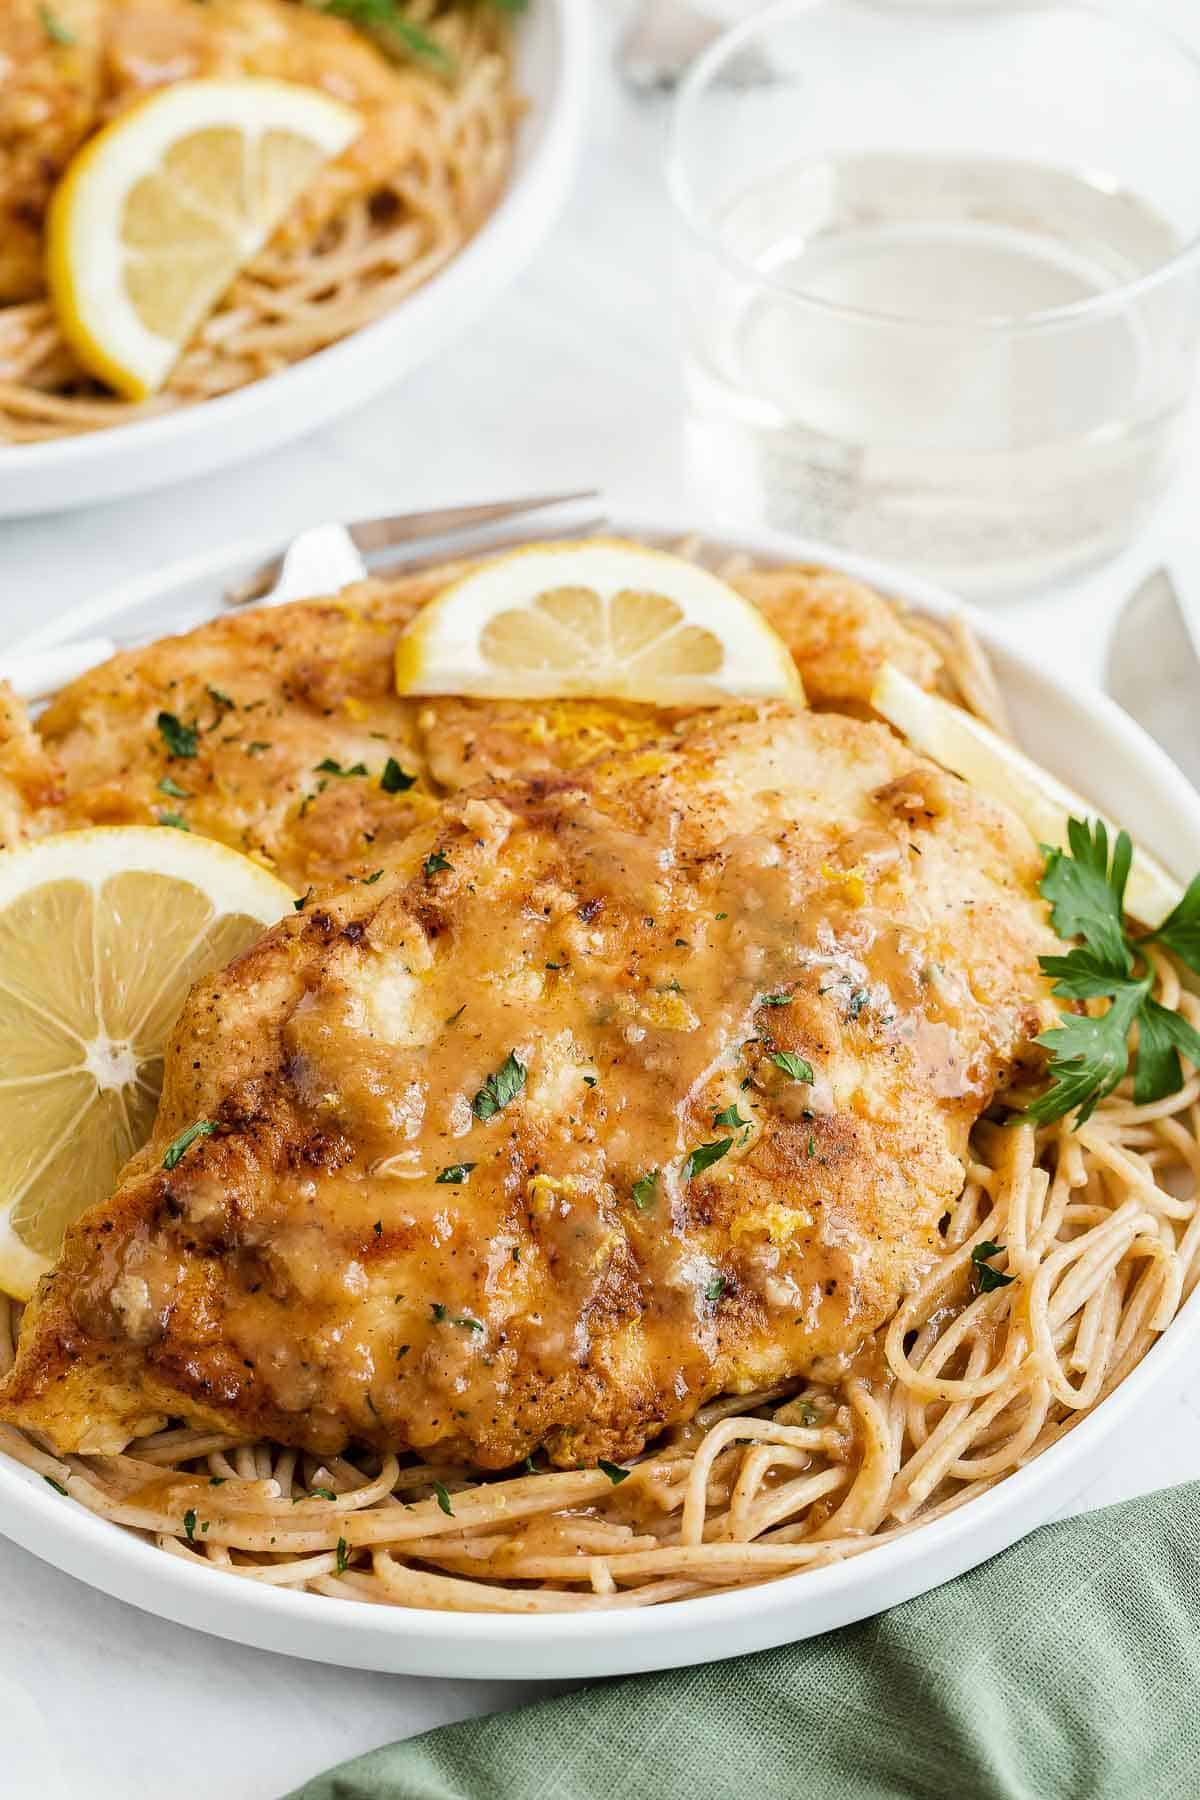 Saucy chicken cutlet over pasta on plate.